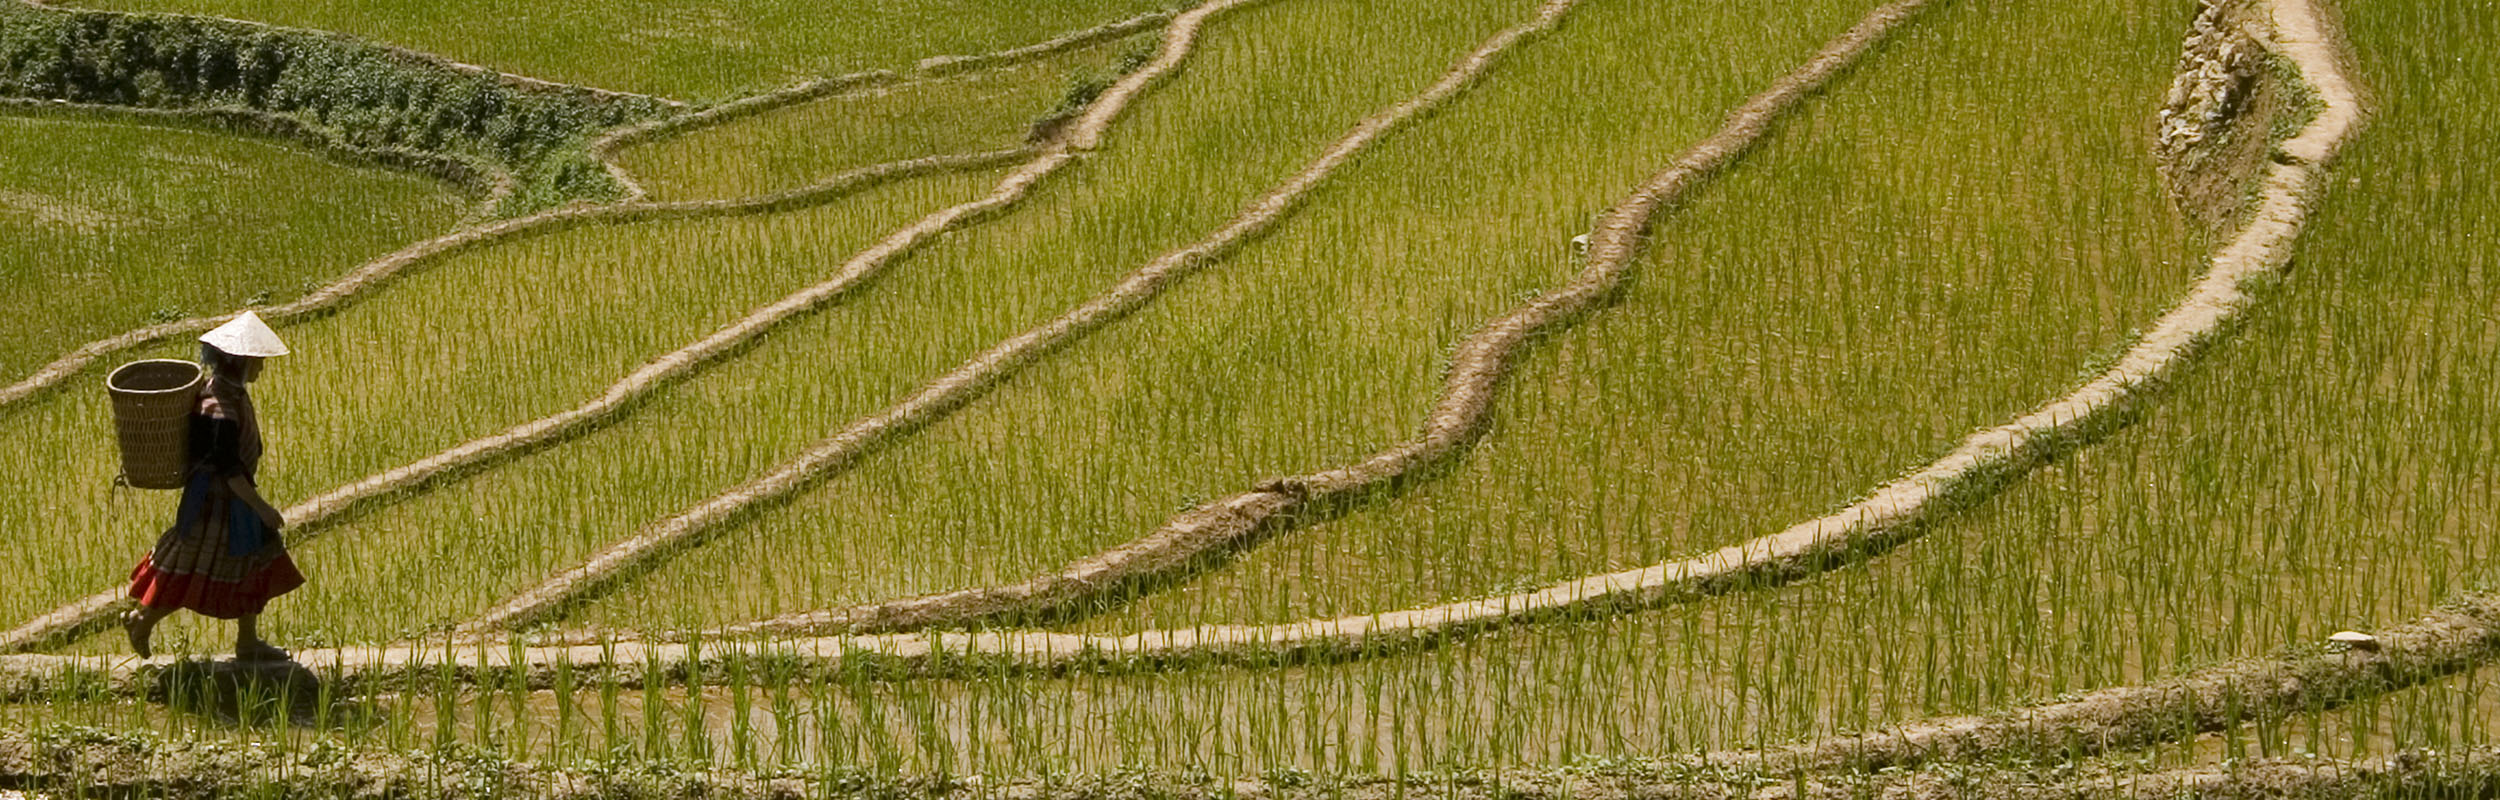 Rice paddies in Vietnam